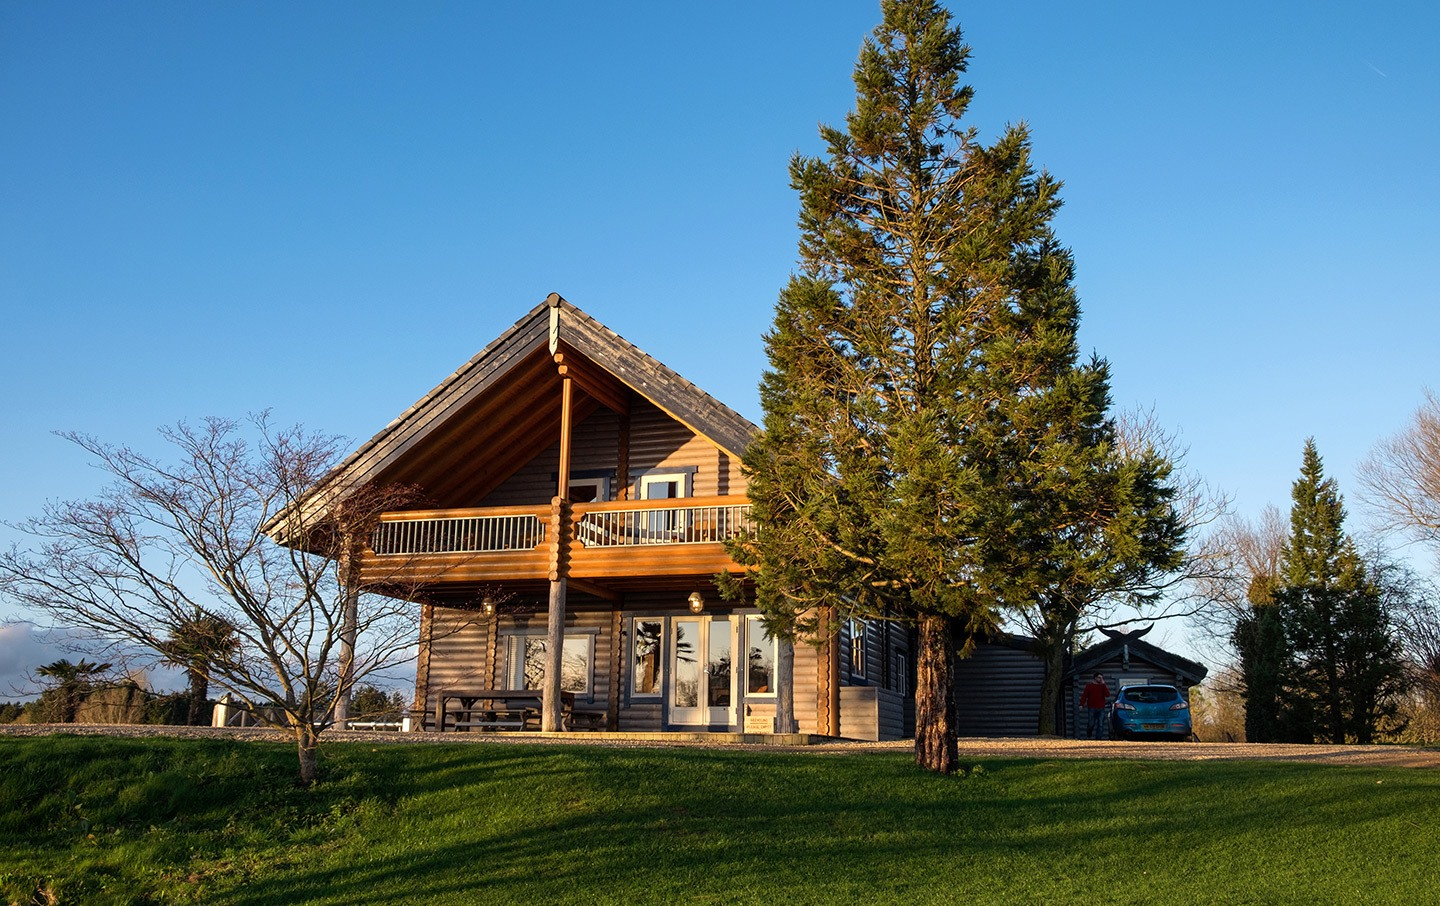 A sustainable travel stay at Log House Holidays in the Cotswolds